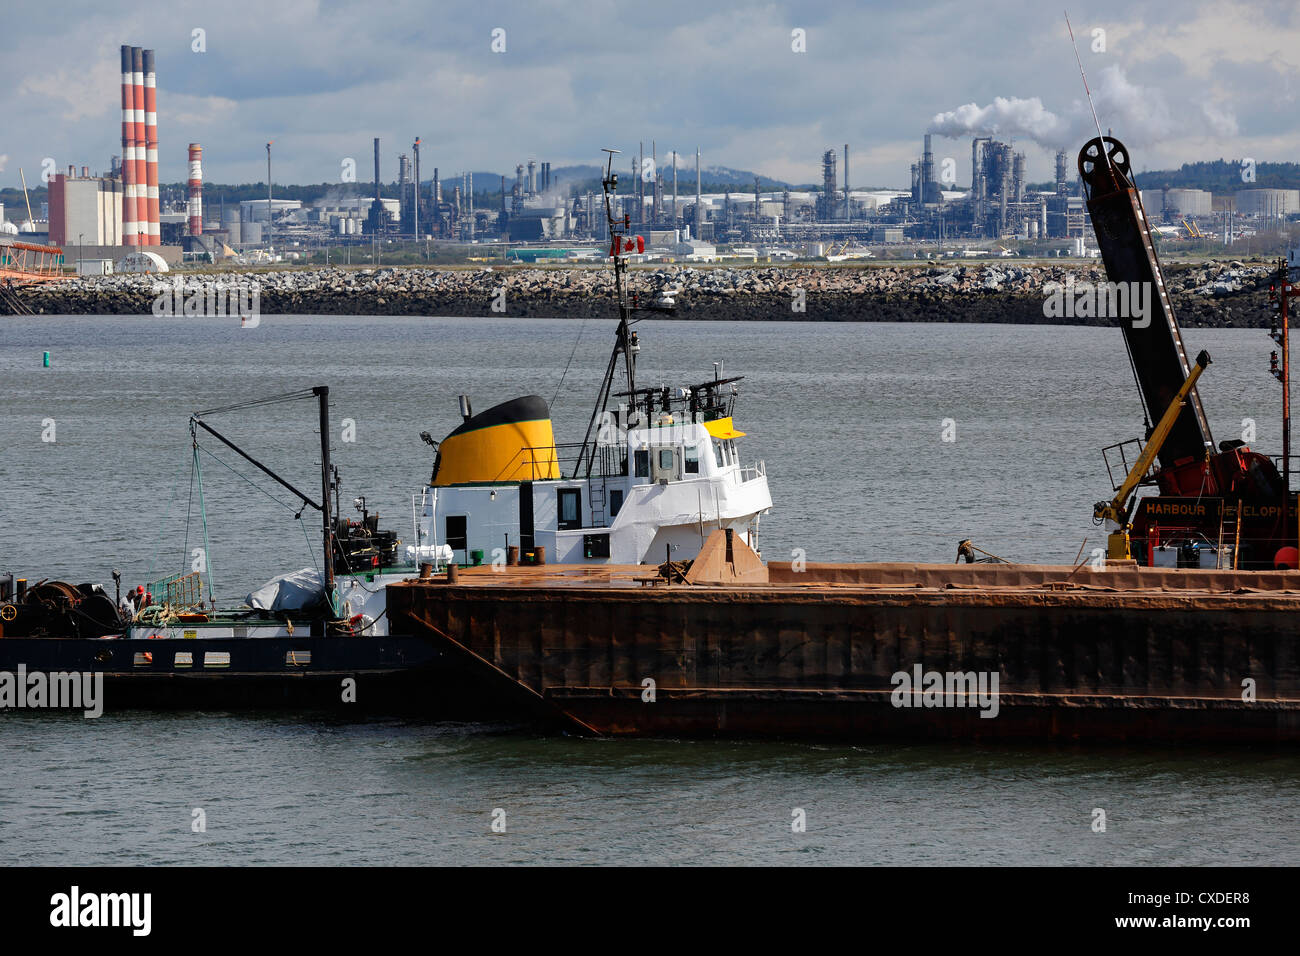 dredging operation and oil refinery in Saint John, New Brunswick - Stock Image